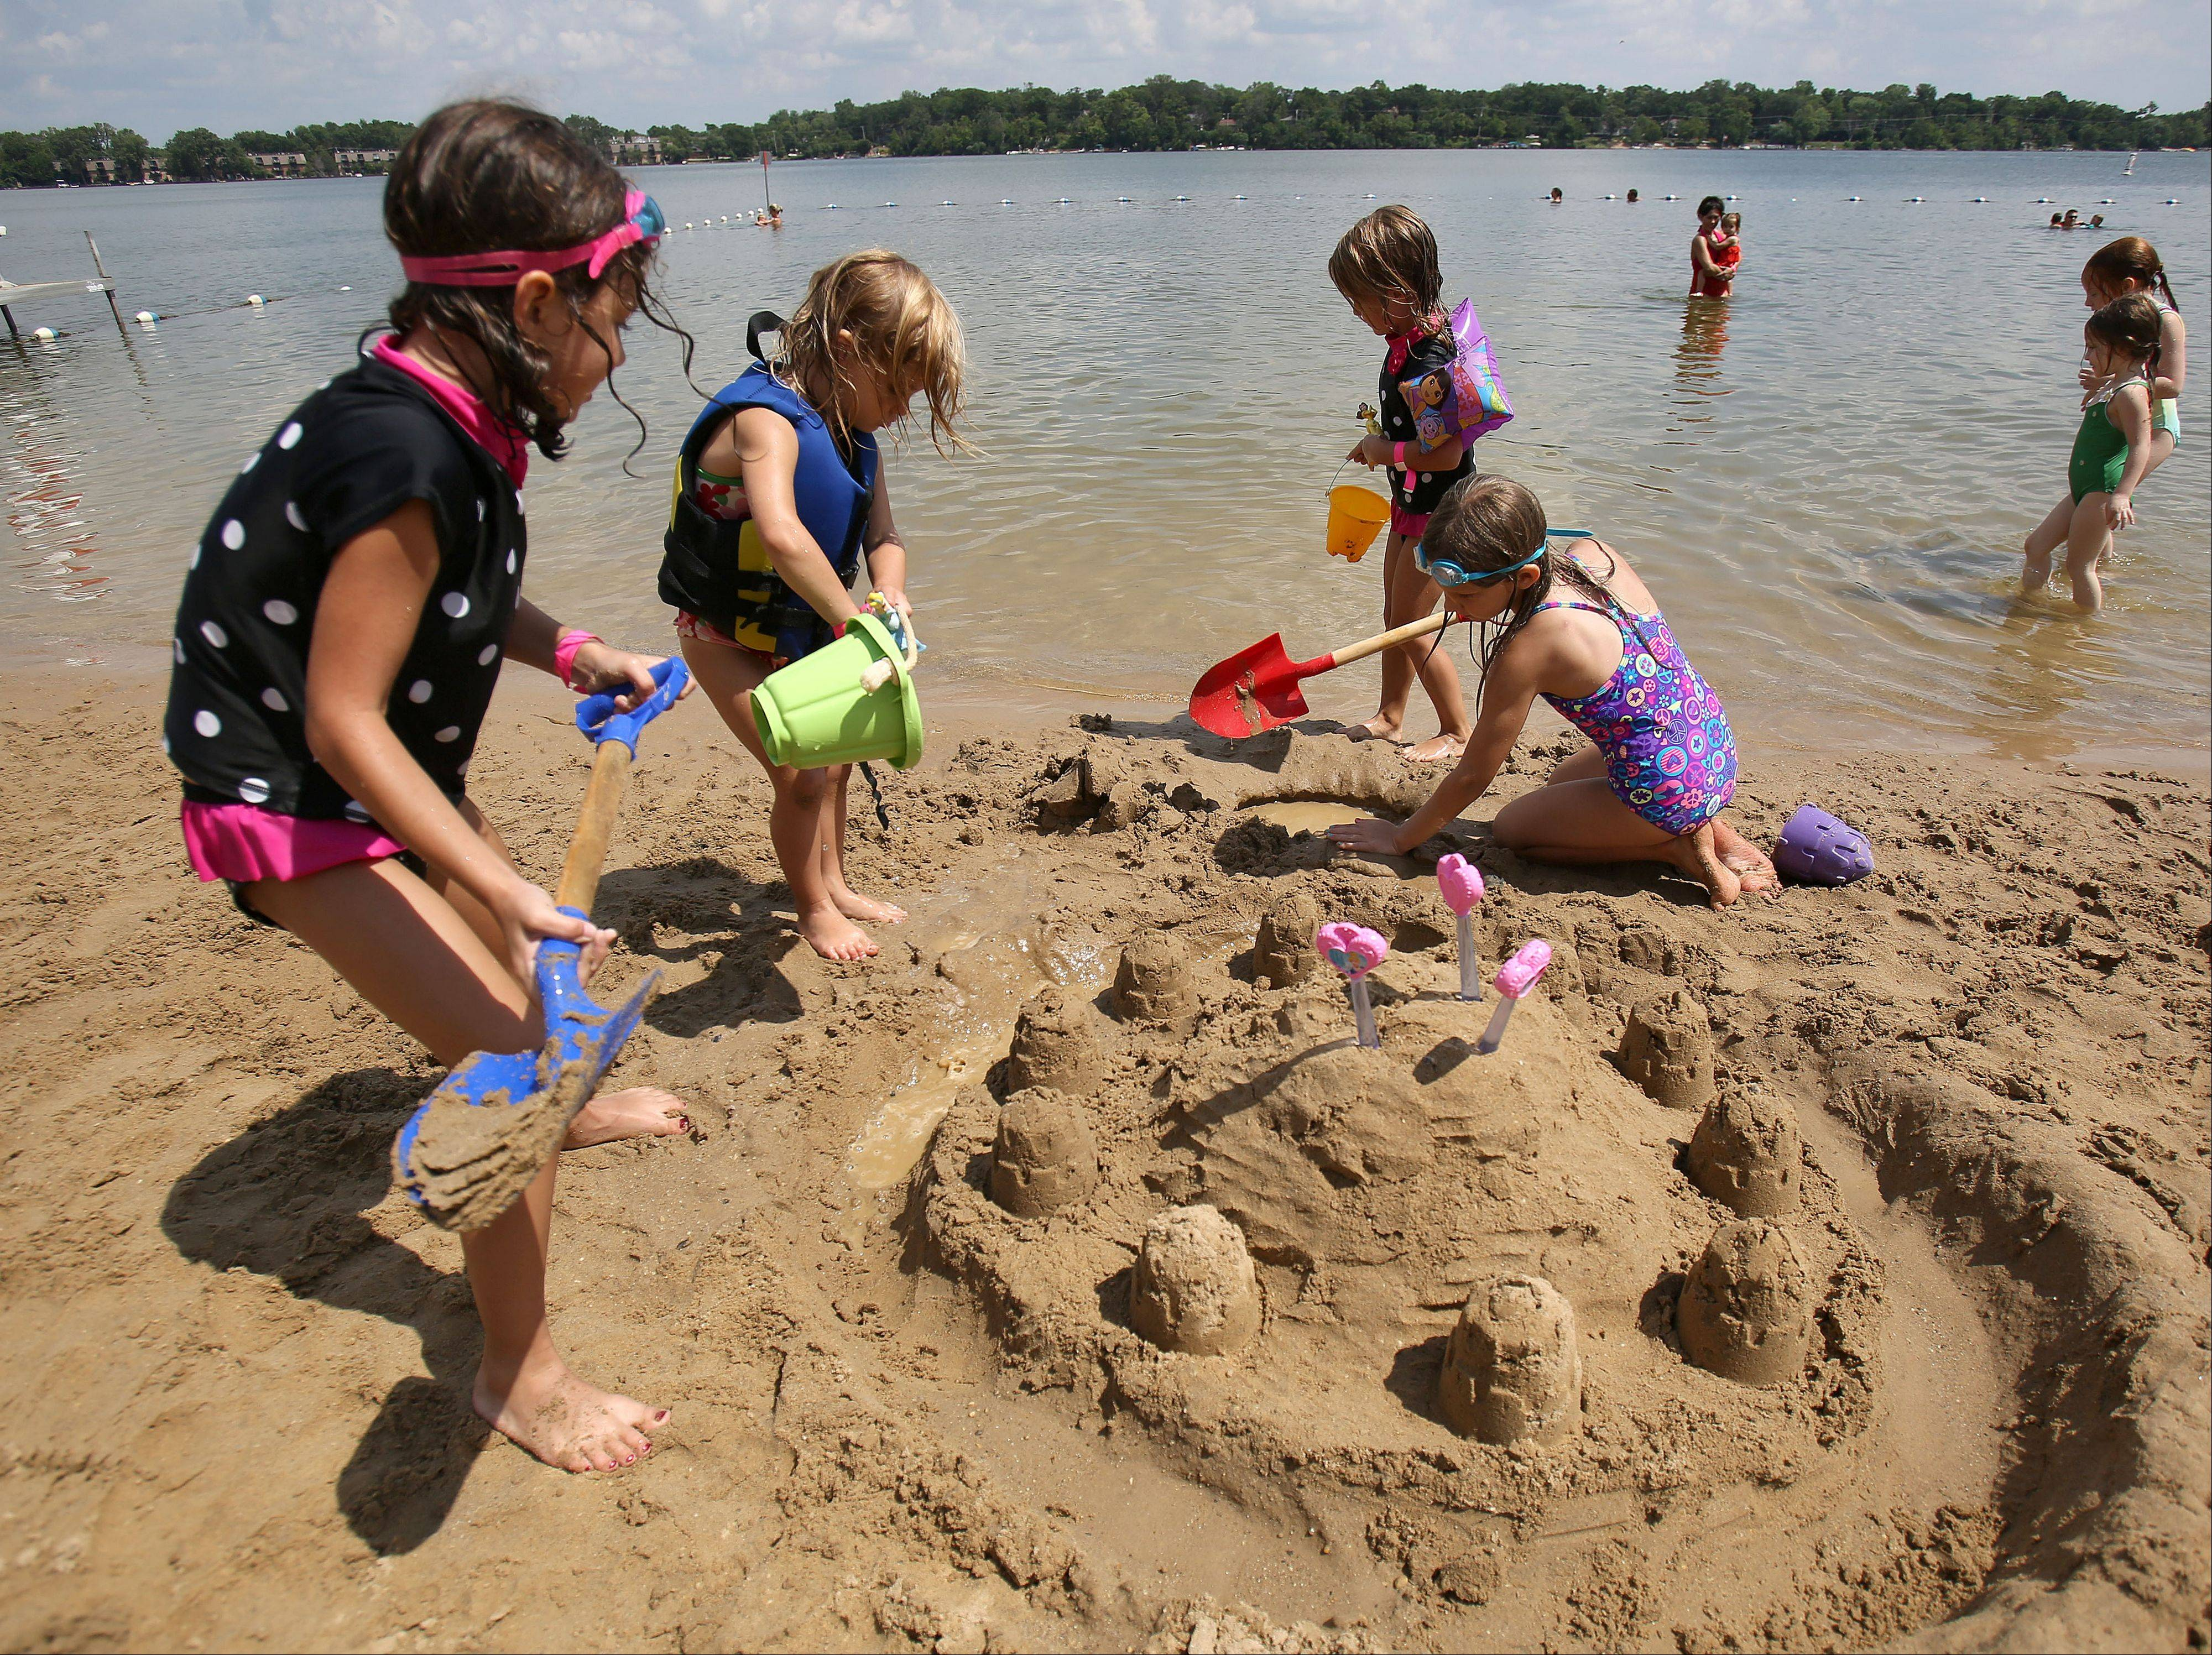 From left, Ellie Santuchi, 6, Kylie Carroll, 4, Ava Santucci, 4, and Kendra Carroll, 6, all of Cary, build a sandcastle at Paulus Park Beach in Lake Zurich Thursday.